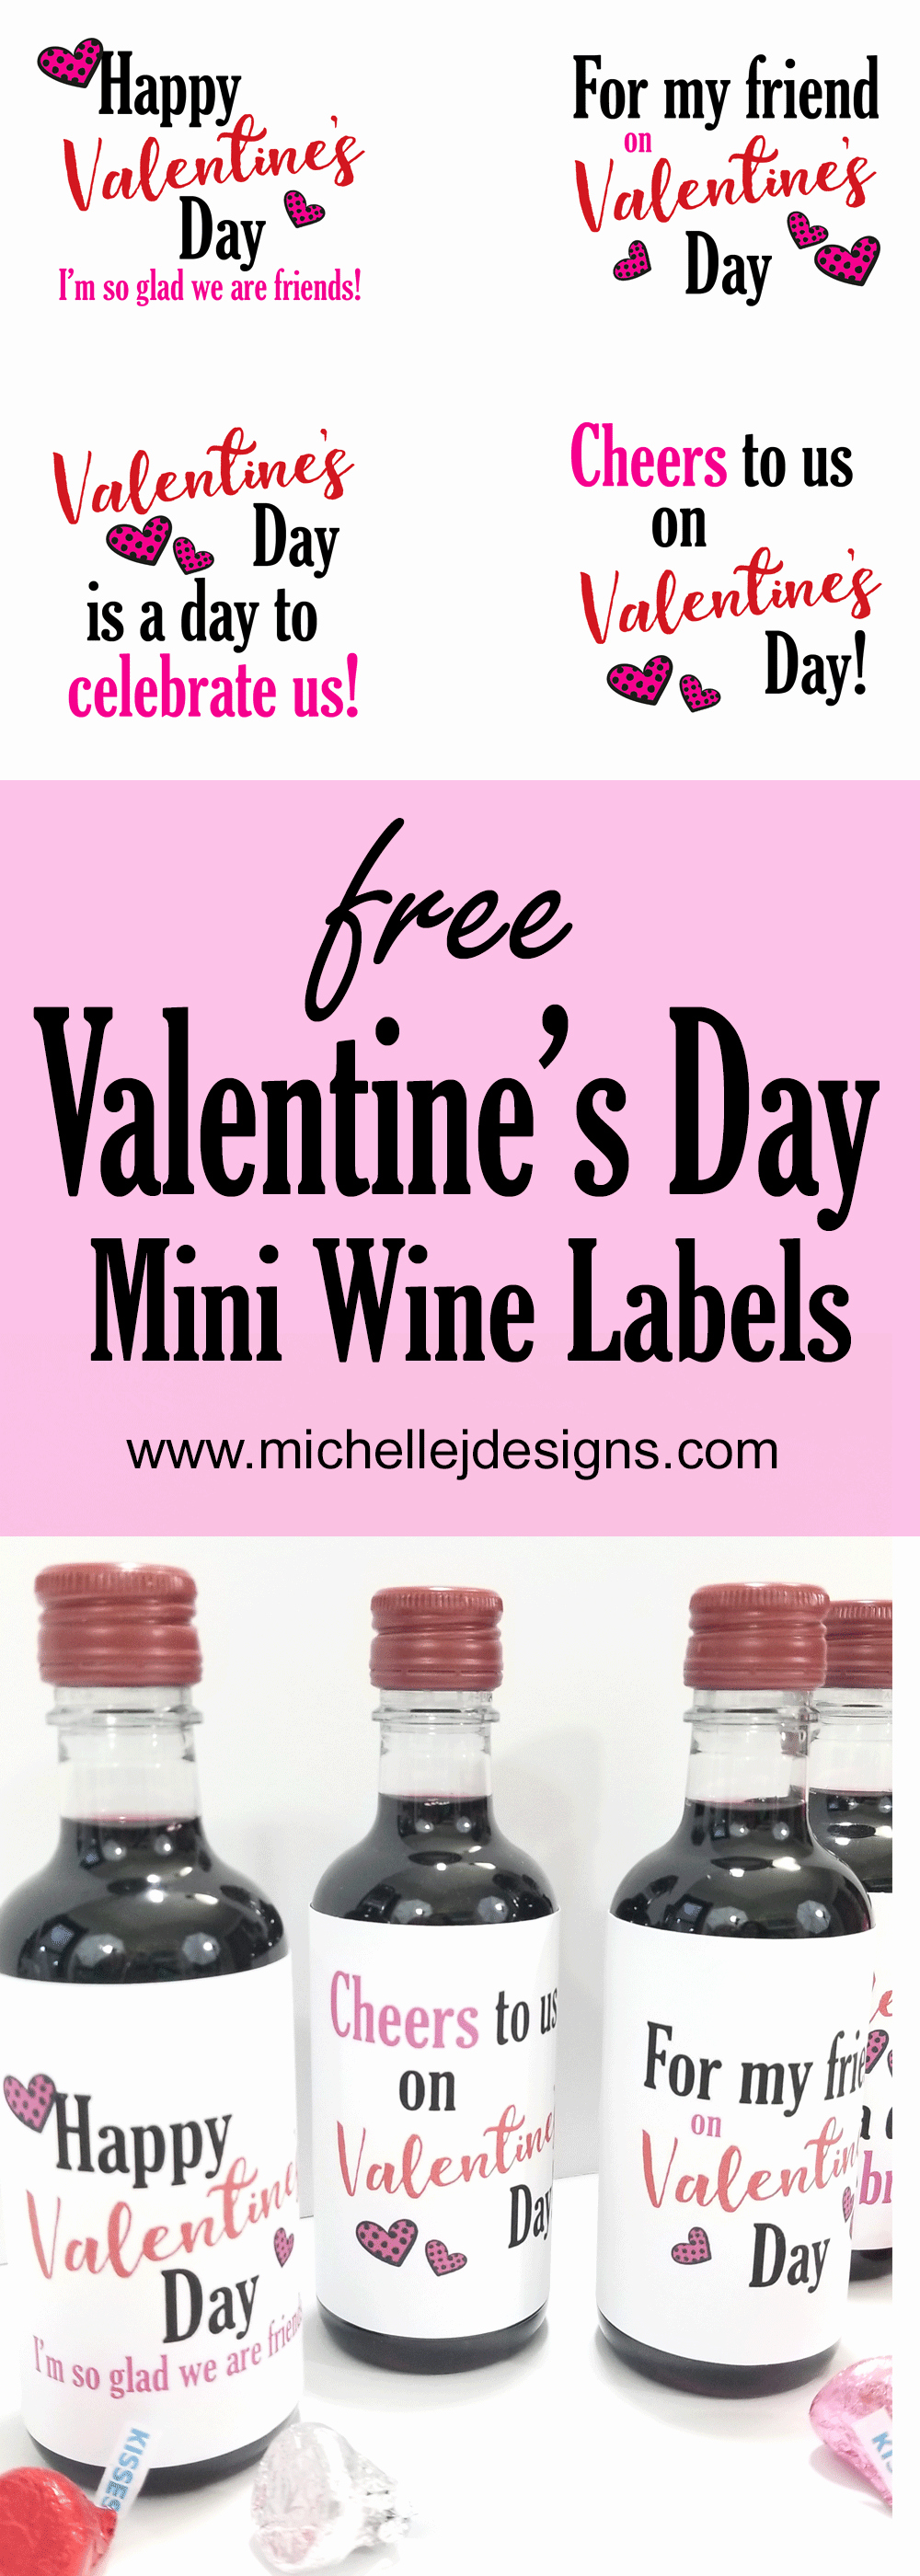 Mini Champagne Bottle Labels Template Beautiful Free Printable Valentine S Day Mini Wine Bottle Labels